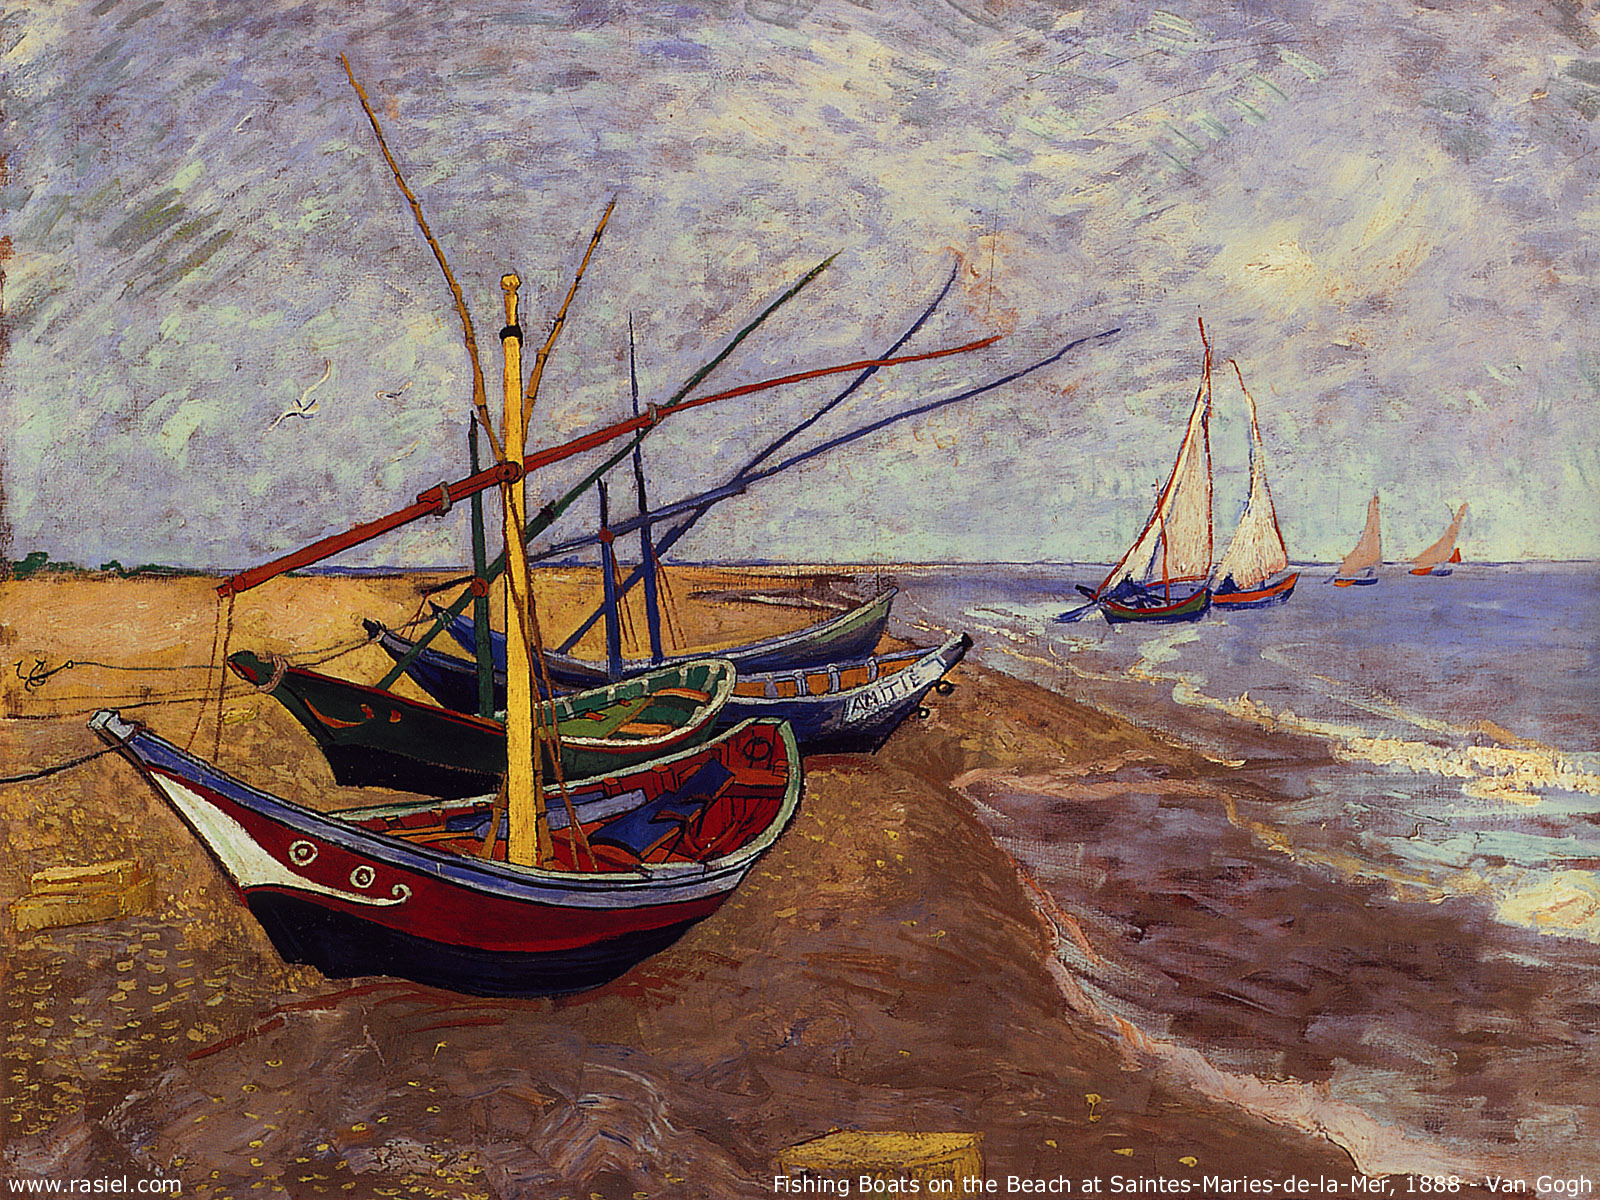 http://4.bp.blogspot.com/-sZir5MICVTI/Td3I_BbMYcI/AAAAAAAACSs/yHqBjwAsFZA/s1600/Fishing_Boats_on_the_Beach_at_Sainte-Marie-de-a-Mer_1888.jpg